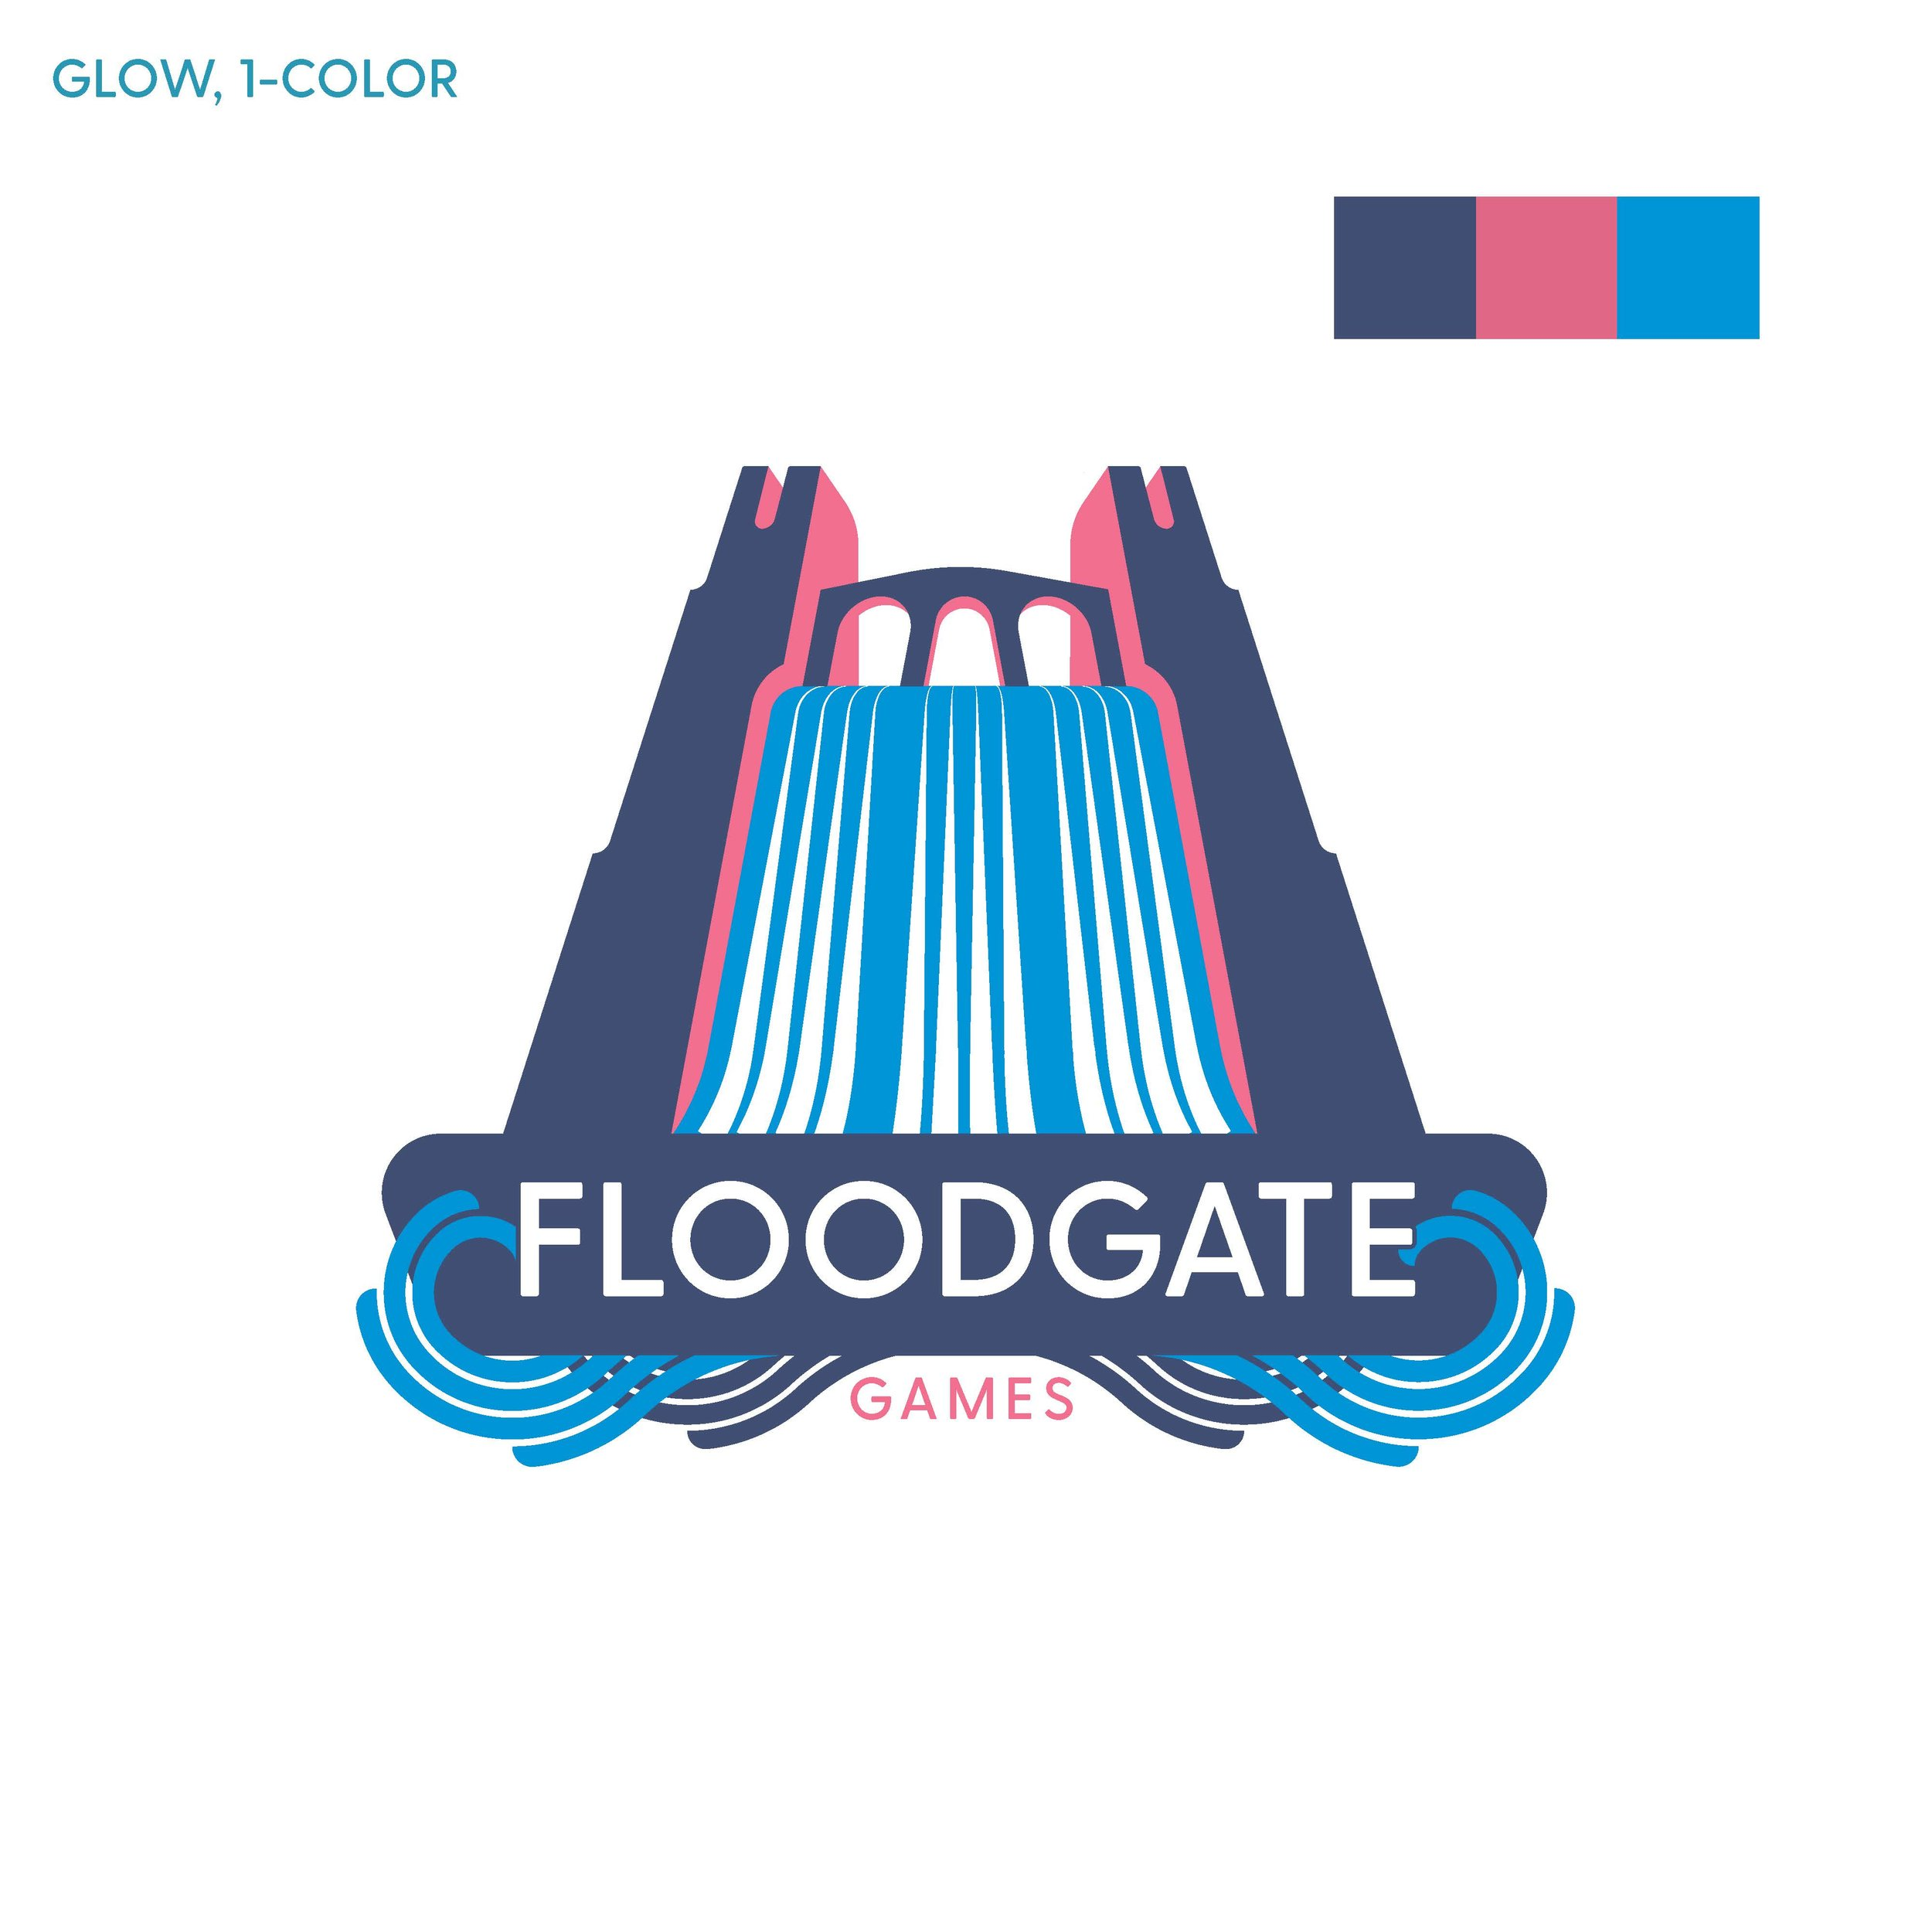 Floodgate_Logo2_V6_COLORS_Page_08.jpg